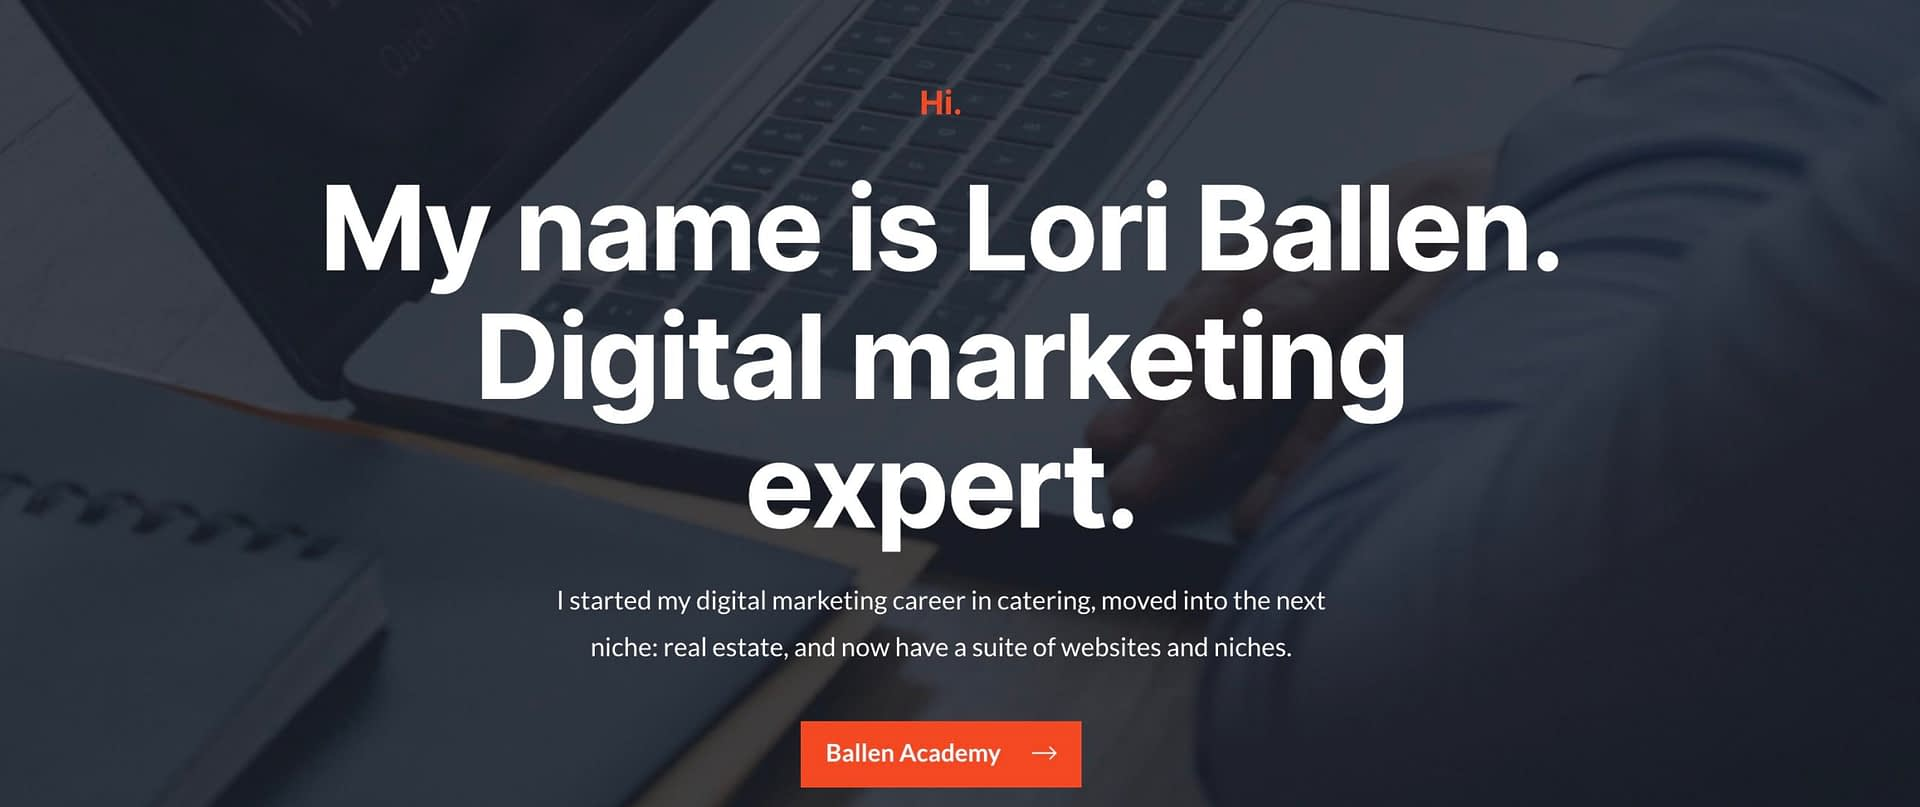 "A sample header from an elementor landing page says ""My name is Lori Ballen. Digital Marketing expert."